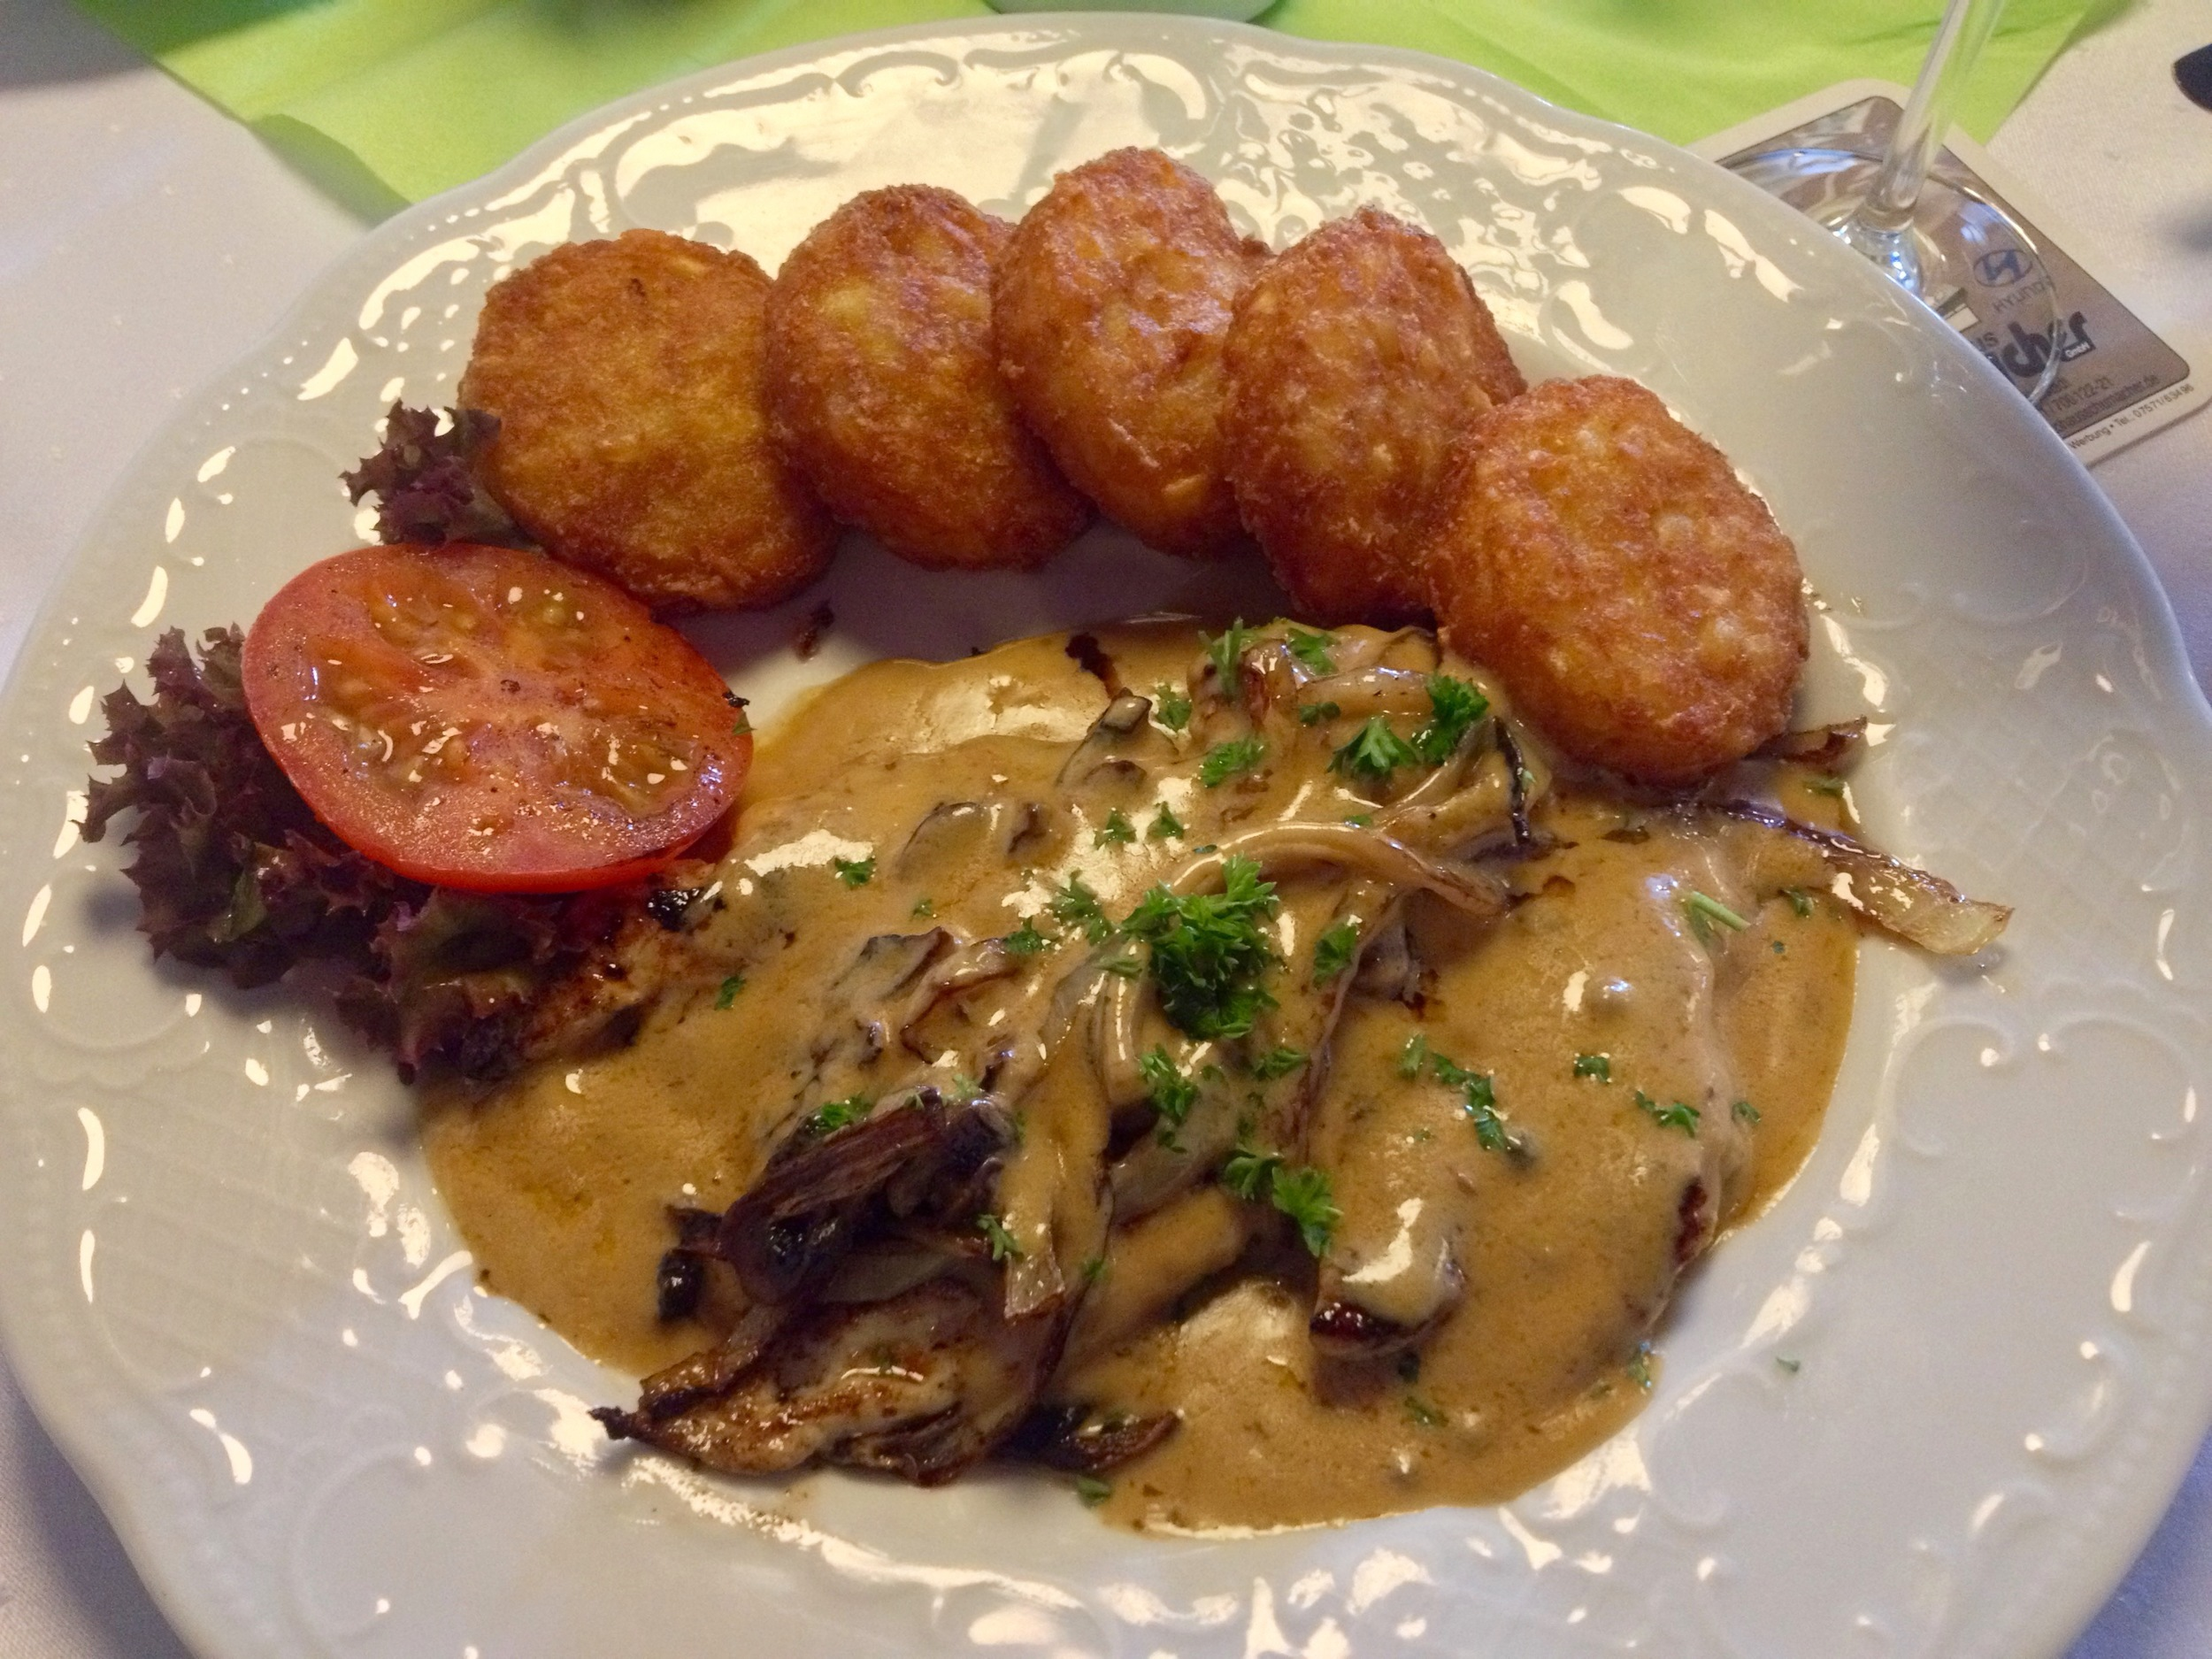 Chicken breast smothered in mushrooms, onions, and a pepper sauce served with potato  röstis